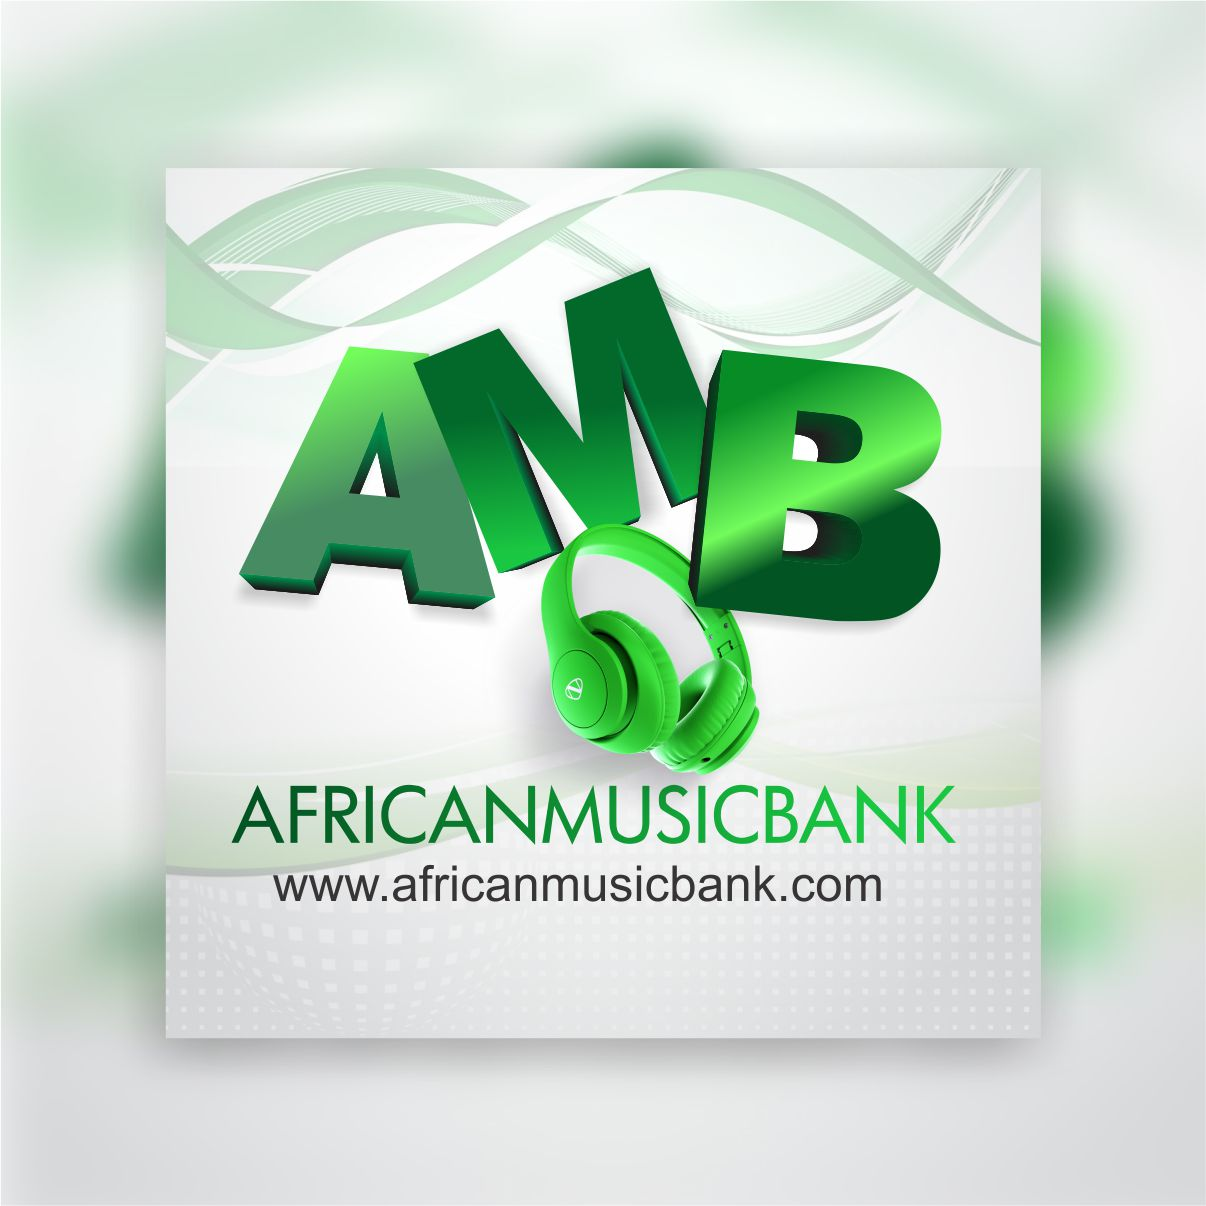 Africanmusicbank.com